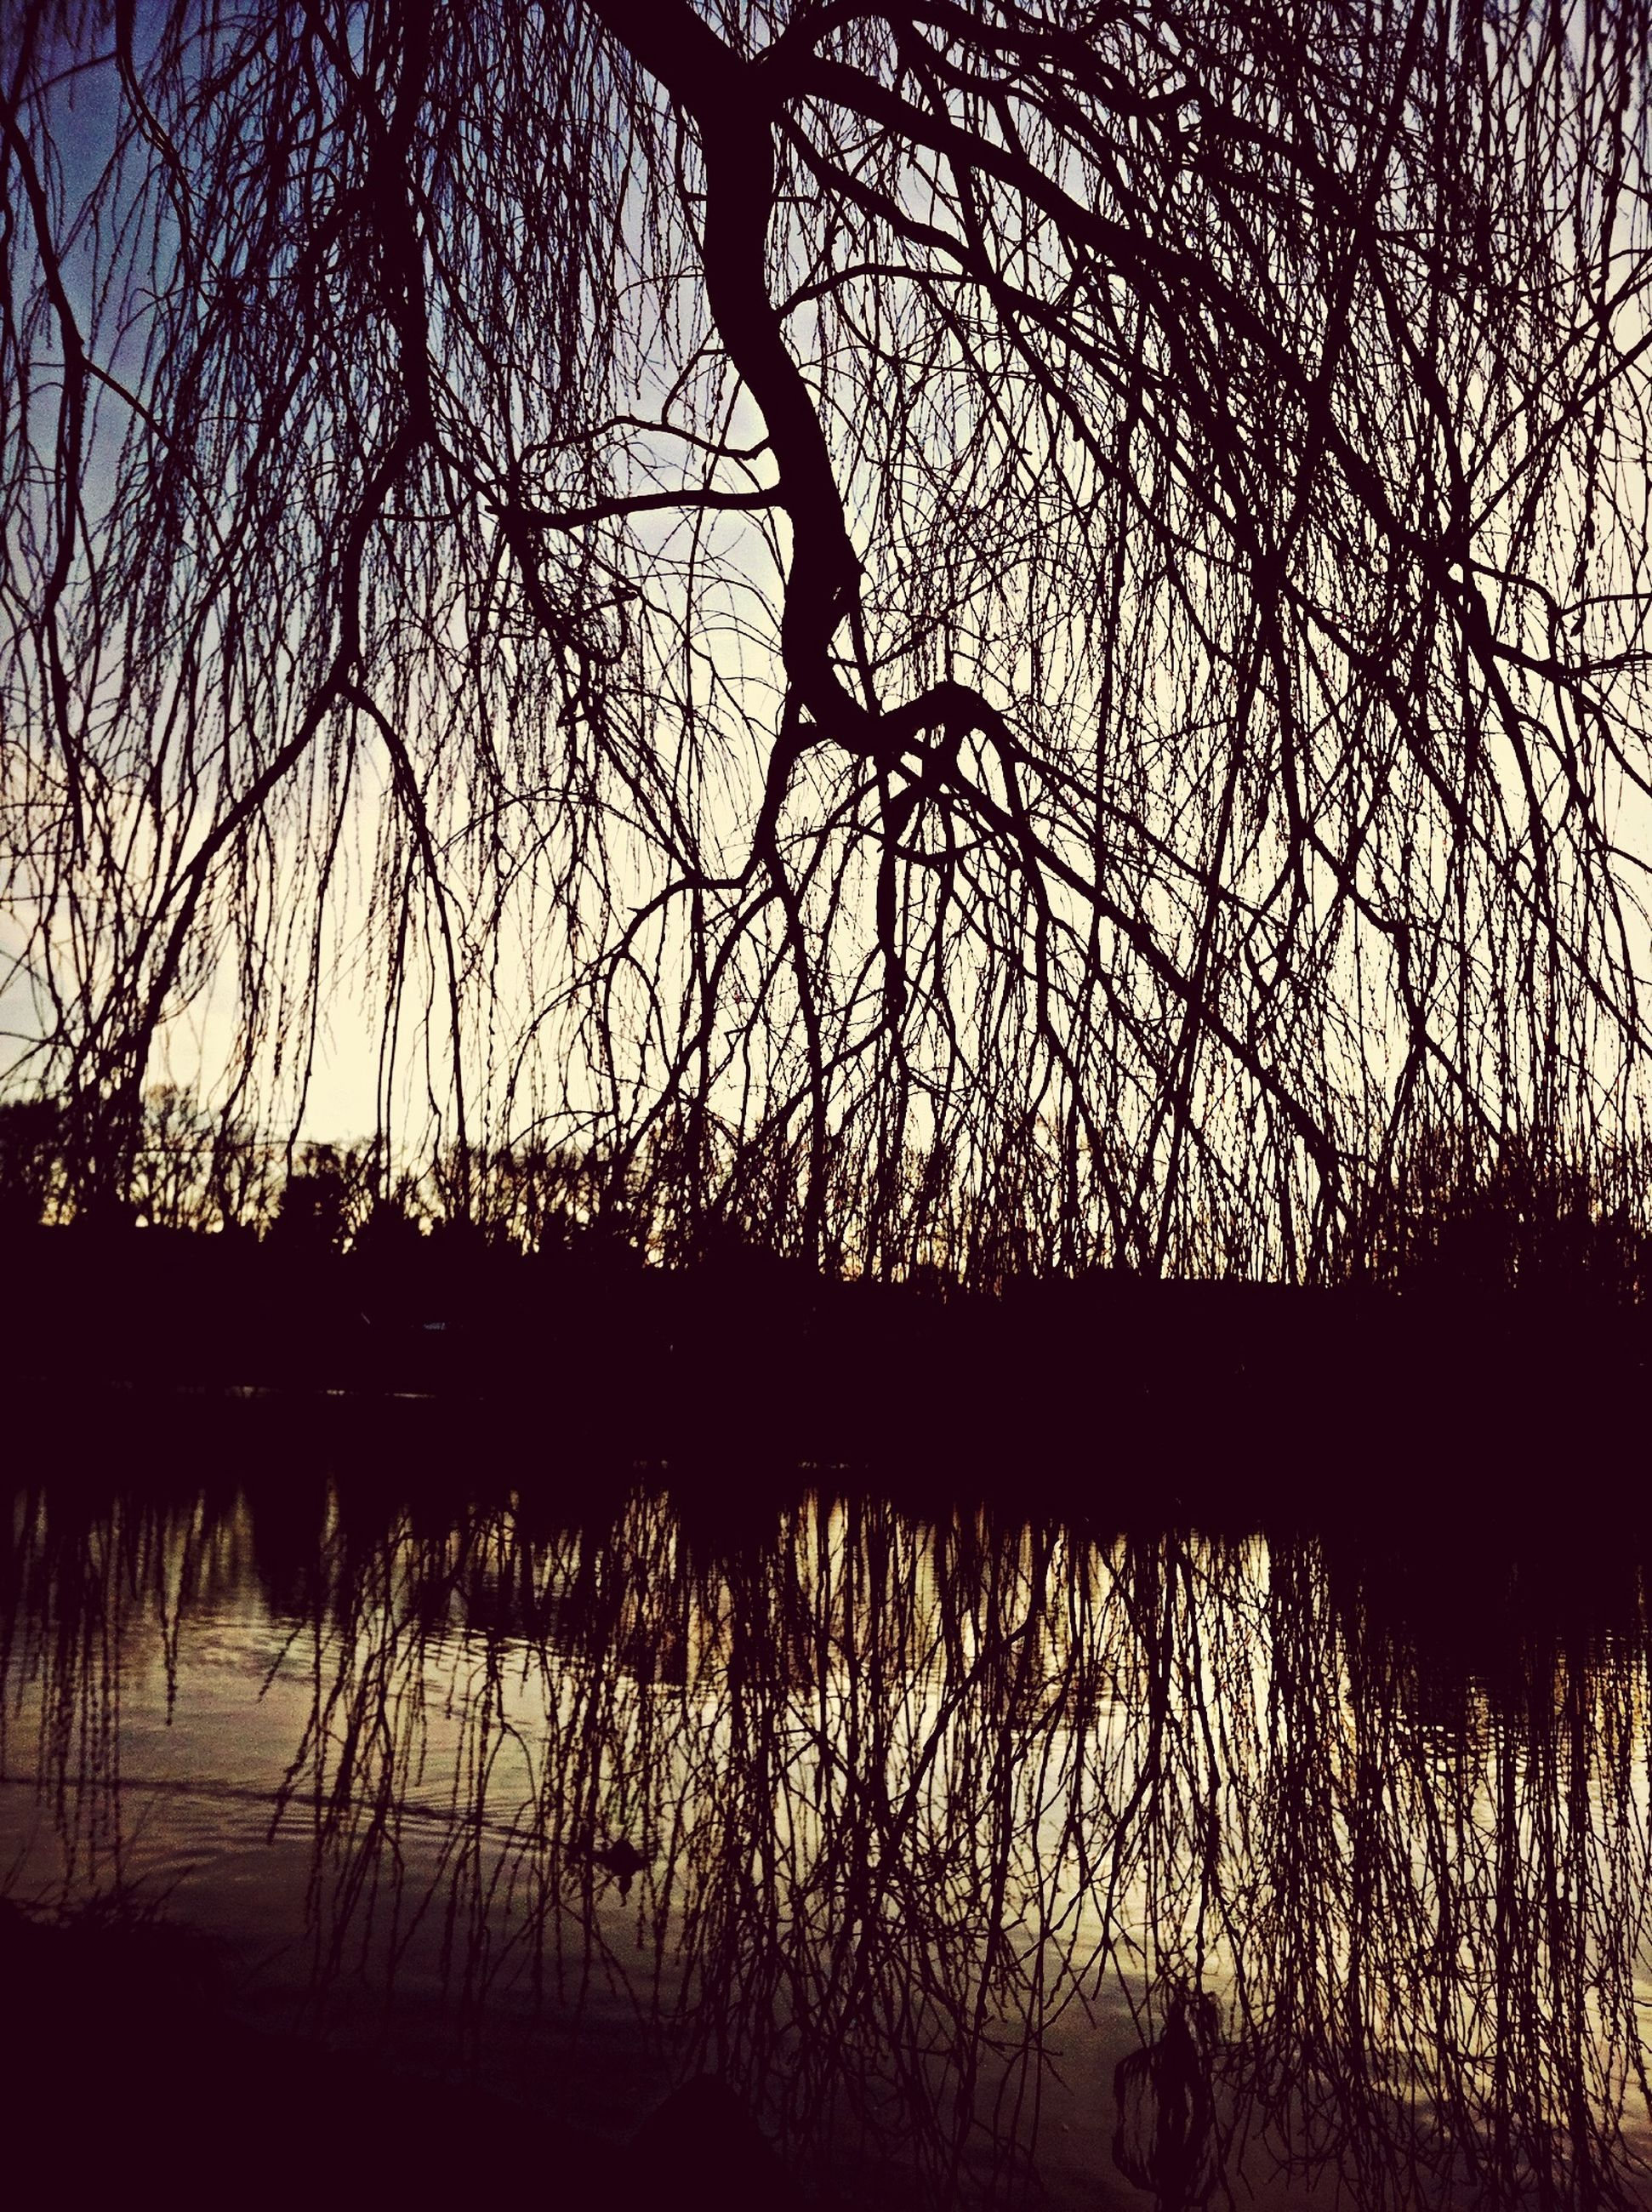 silhouette, water, sunset, tree, branch, bare tree, lake, tranquility, reflection, scenics, nature, tranquil scene, sky, beauty in nature, river, outline, idyllic, outdoors, rippled, dusk